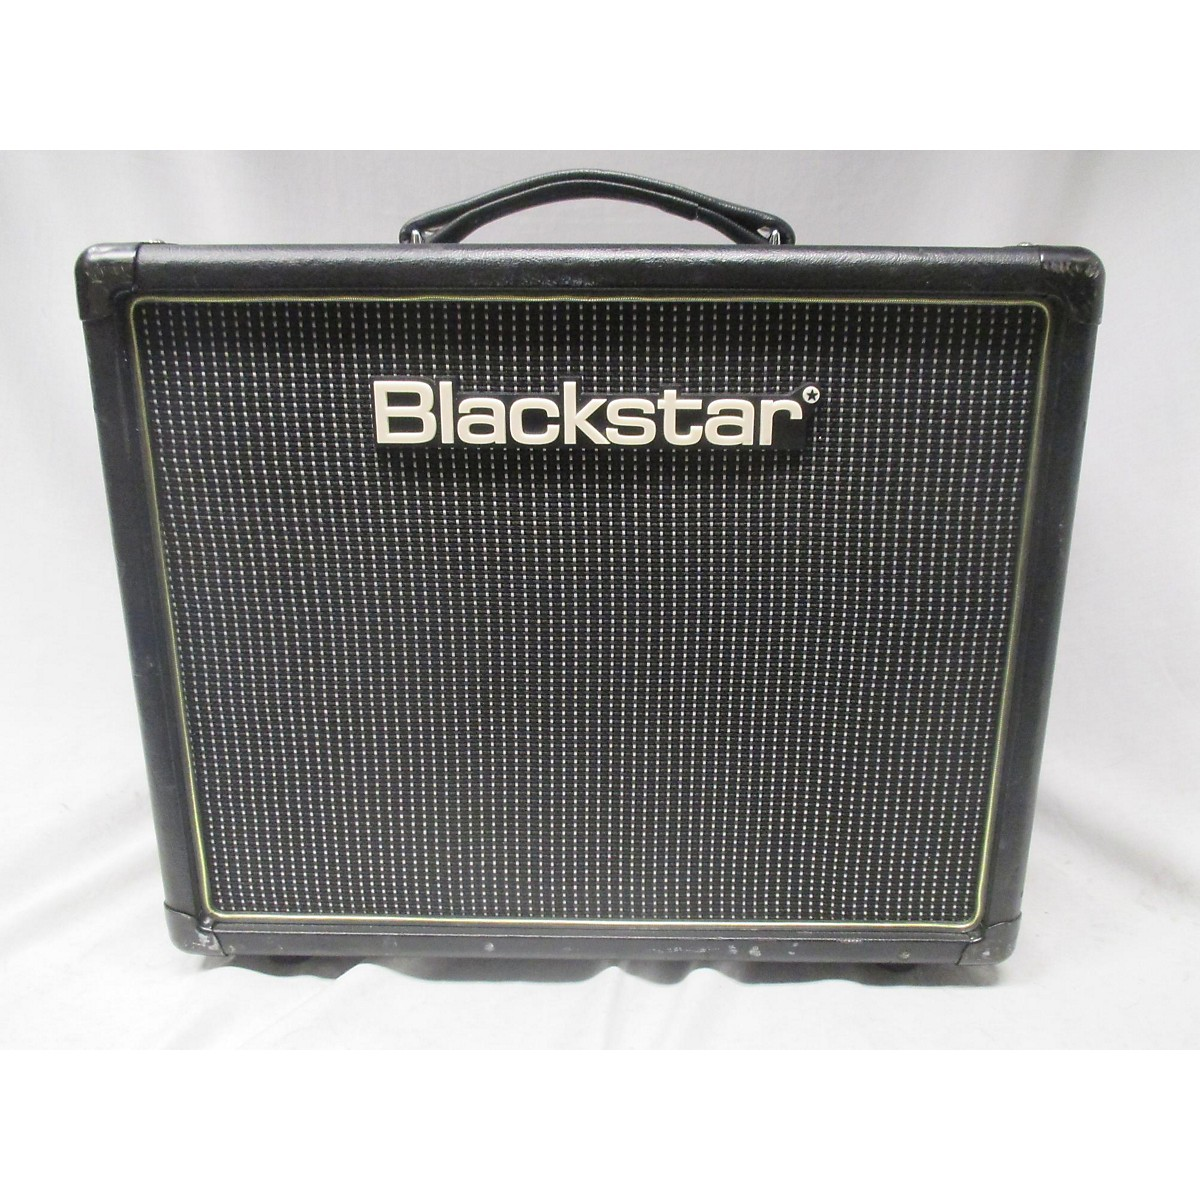 Blackstar HT Series 5W 1x10 Tube Guitar Combo Amp